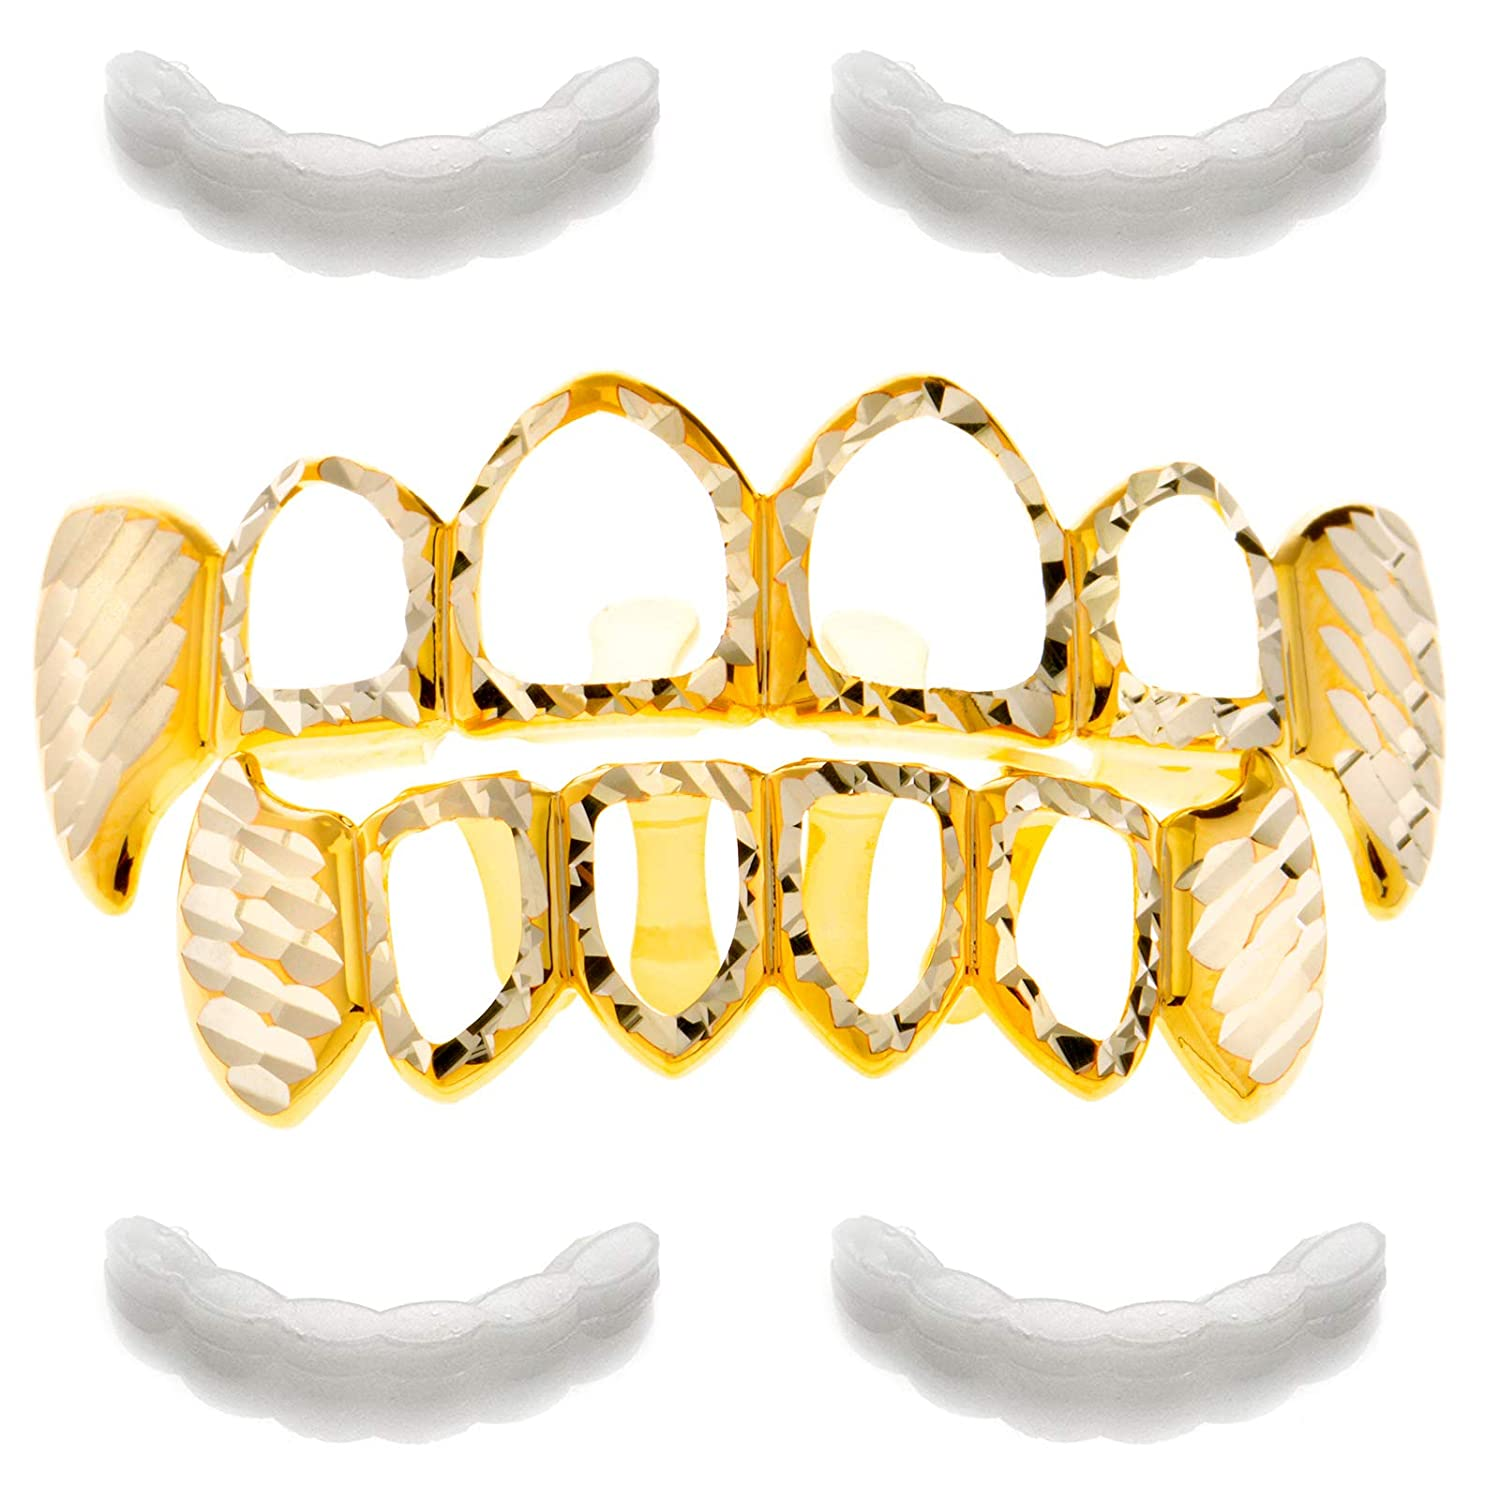 METALTREE98 Grillz Diamond-Cut Open Face Top & Bottom Teeth 4pc Fixing Bar LS 020 4of C4 G LS 020 4OF CUT4 G